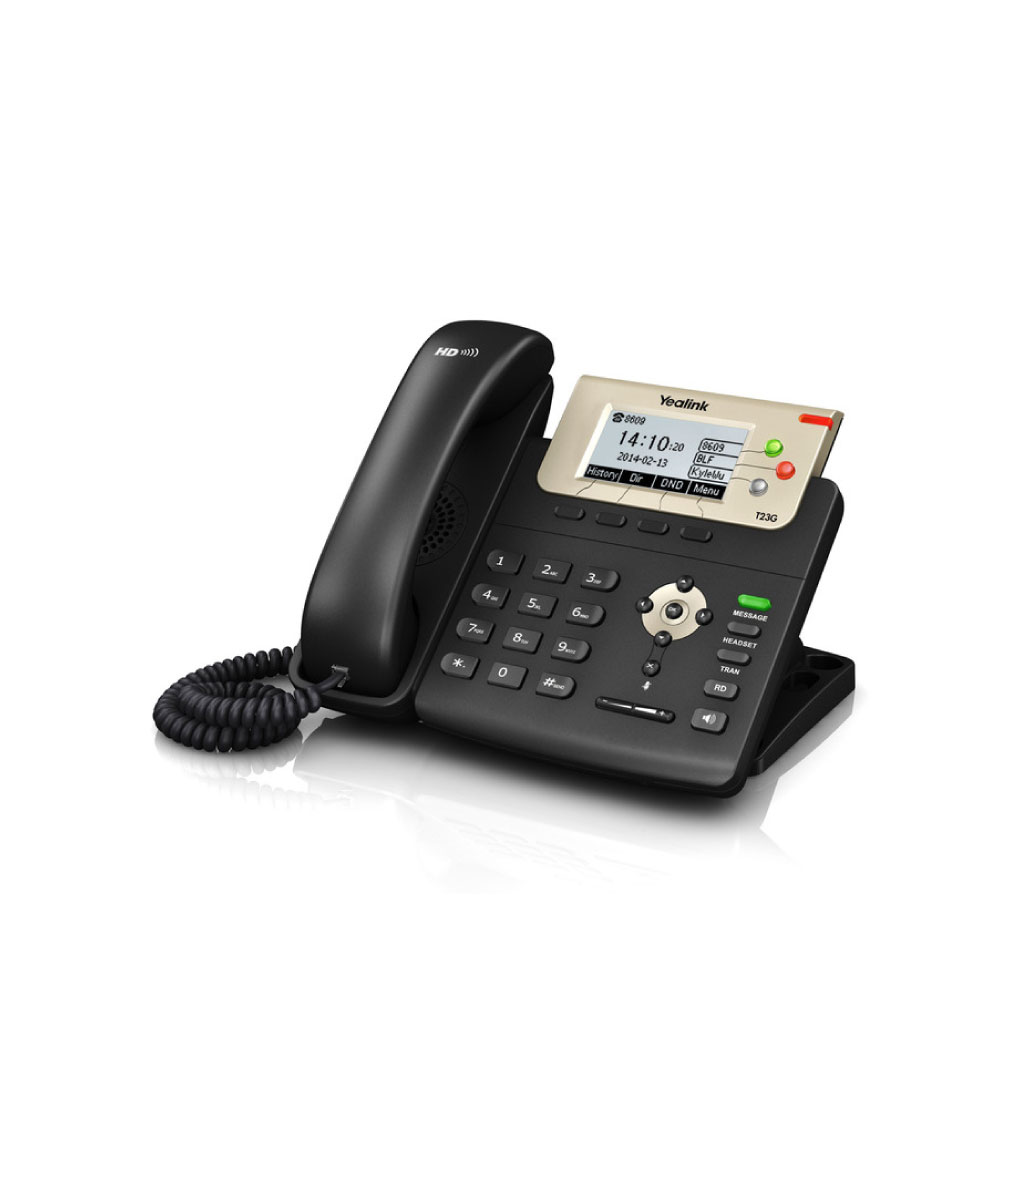 Yealink T23G is a SIP desk phone that supports 3 accounts